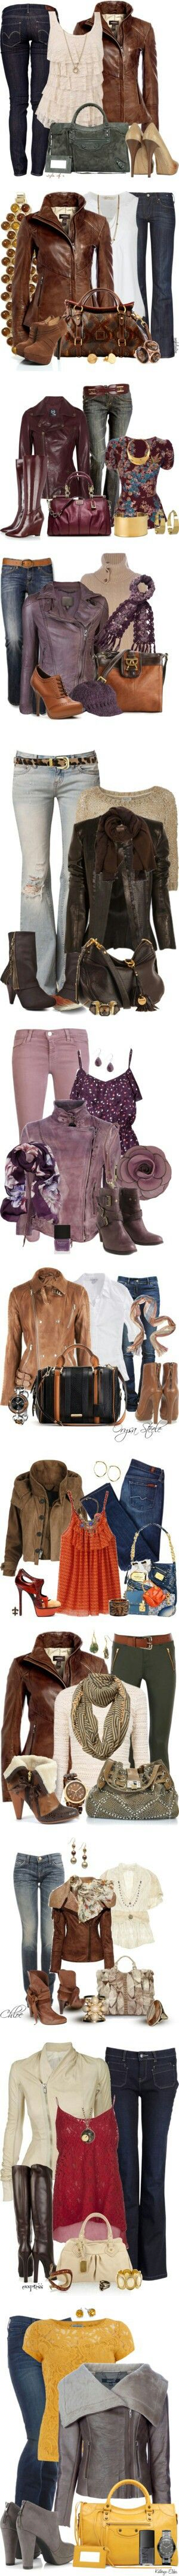 Cute outfits!